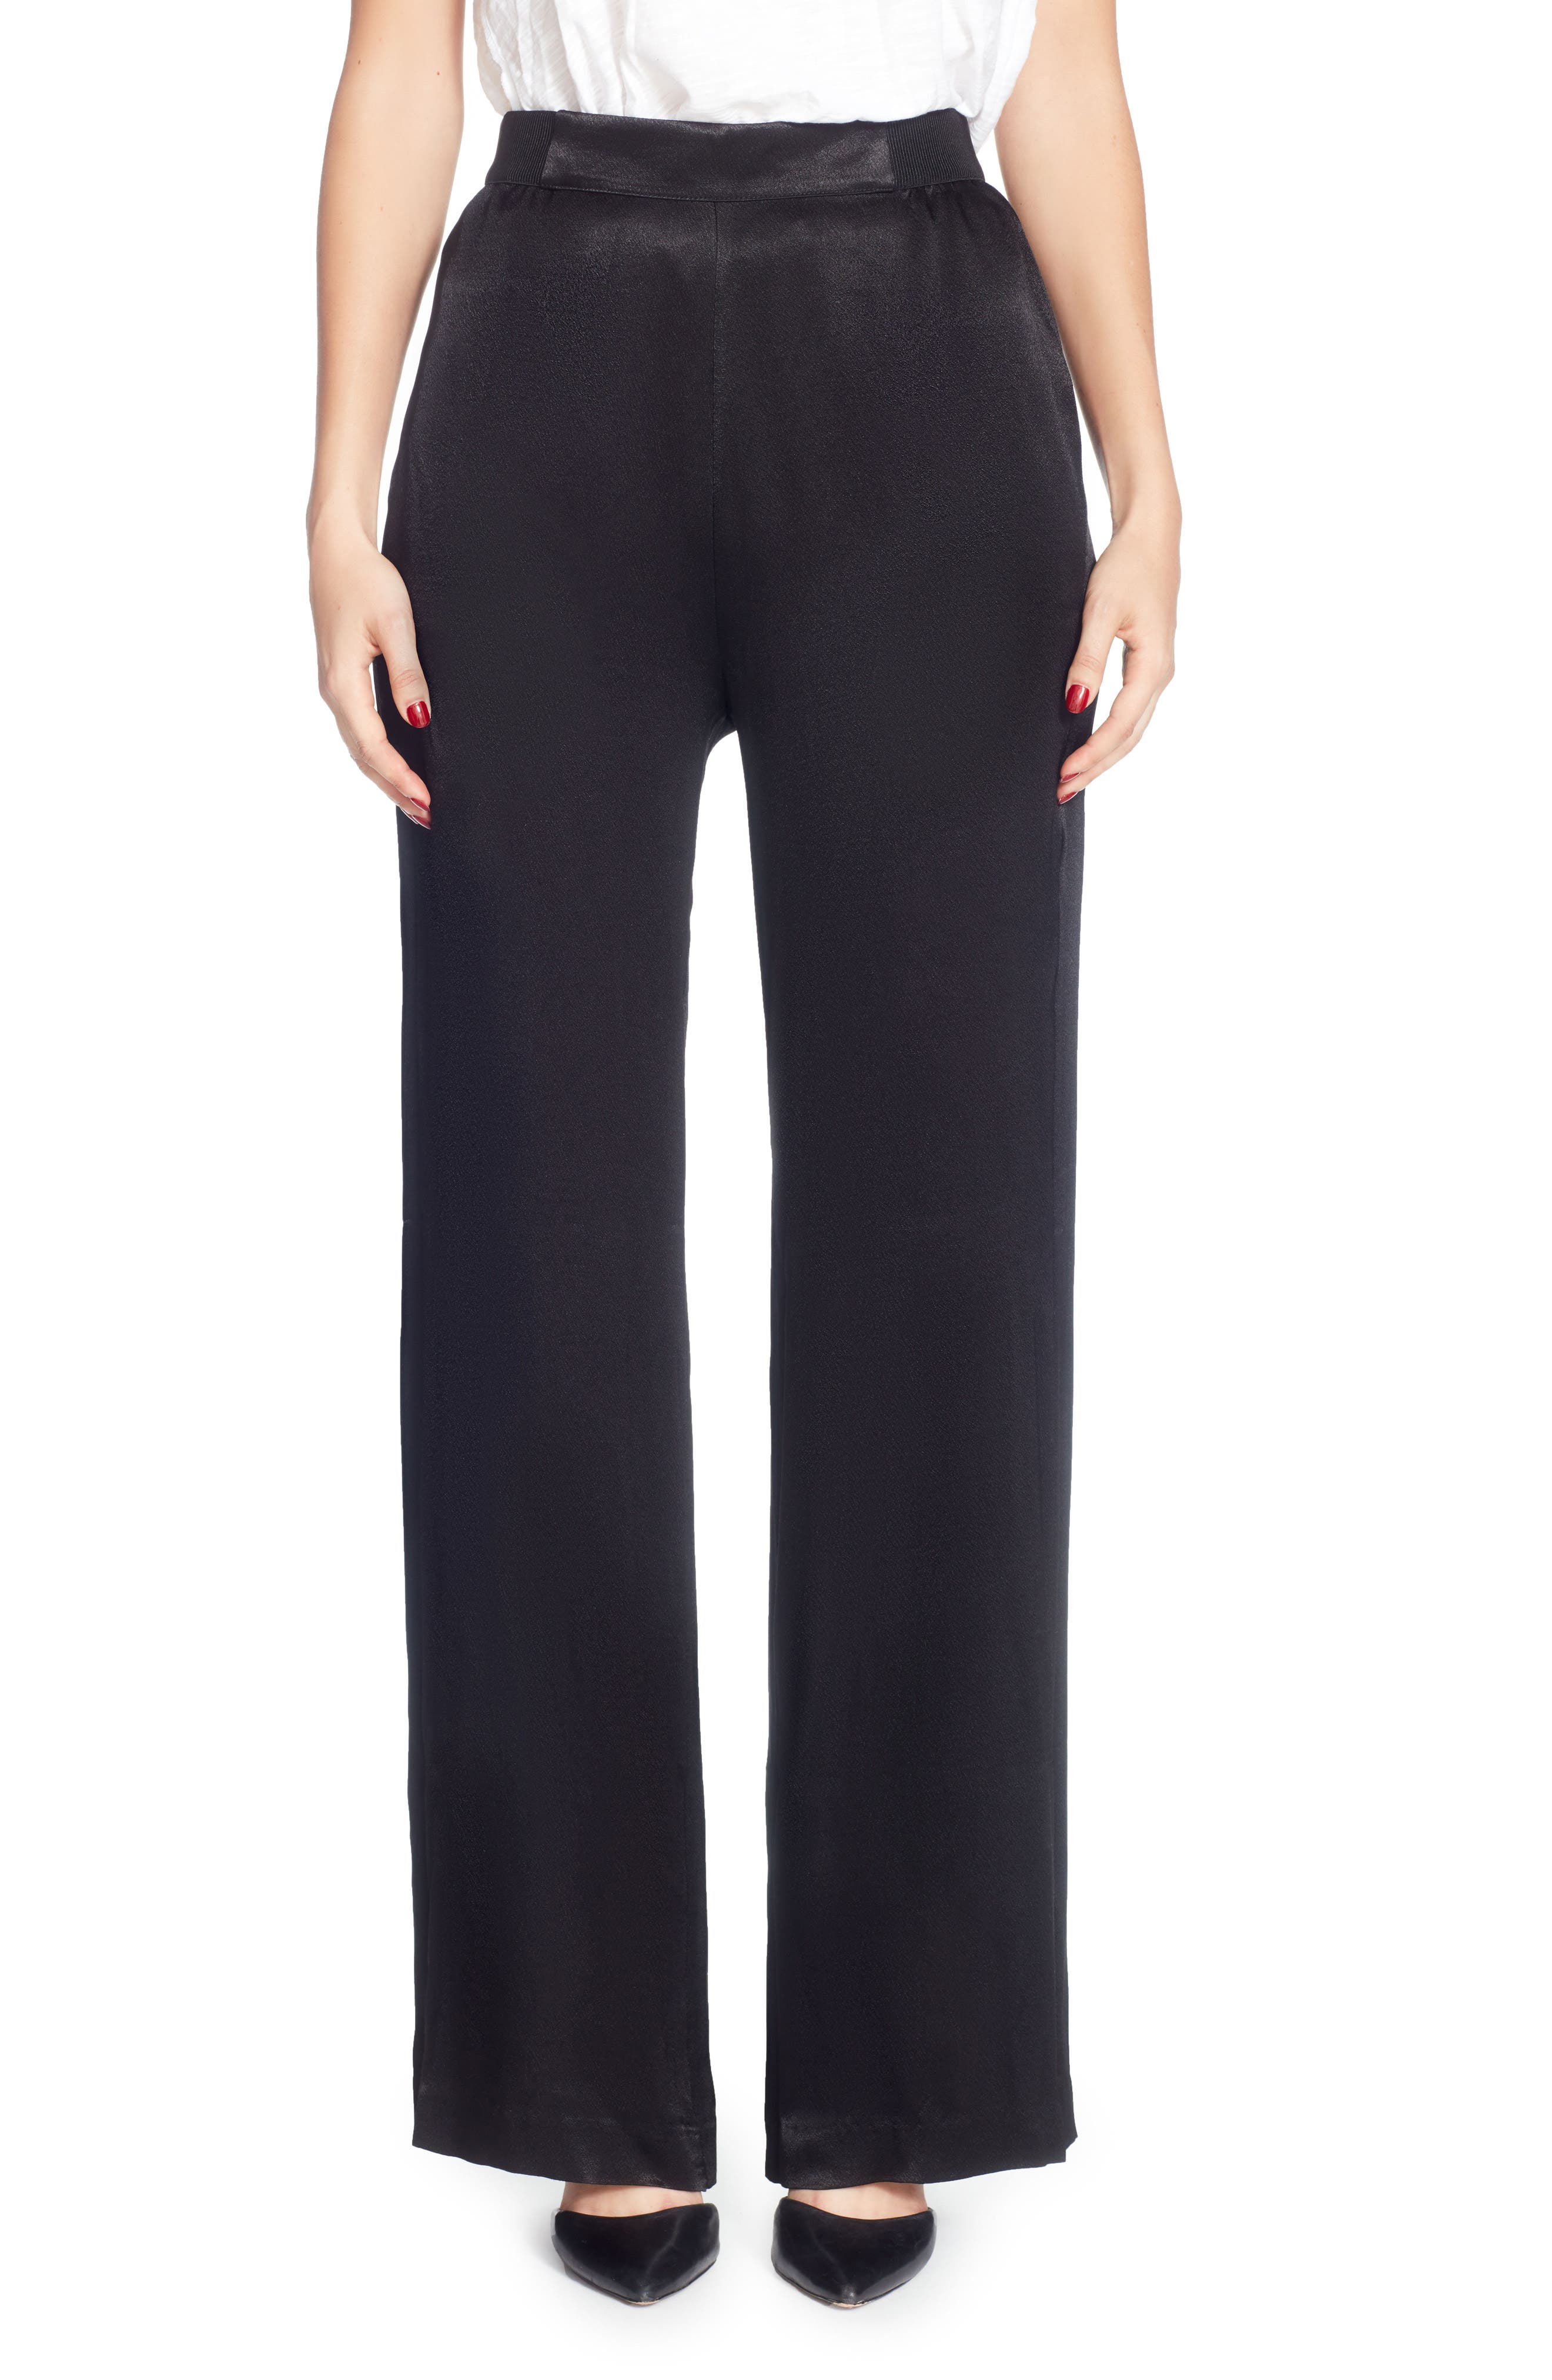 Lief Wide-Leg Pants,                             Main thumbnail 1, color,                             Black